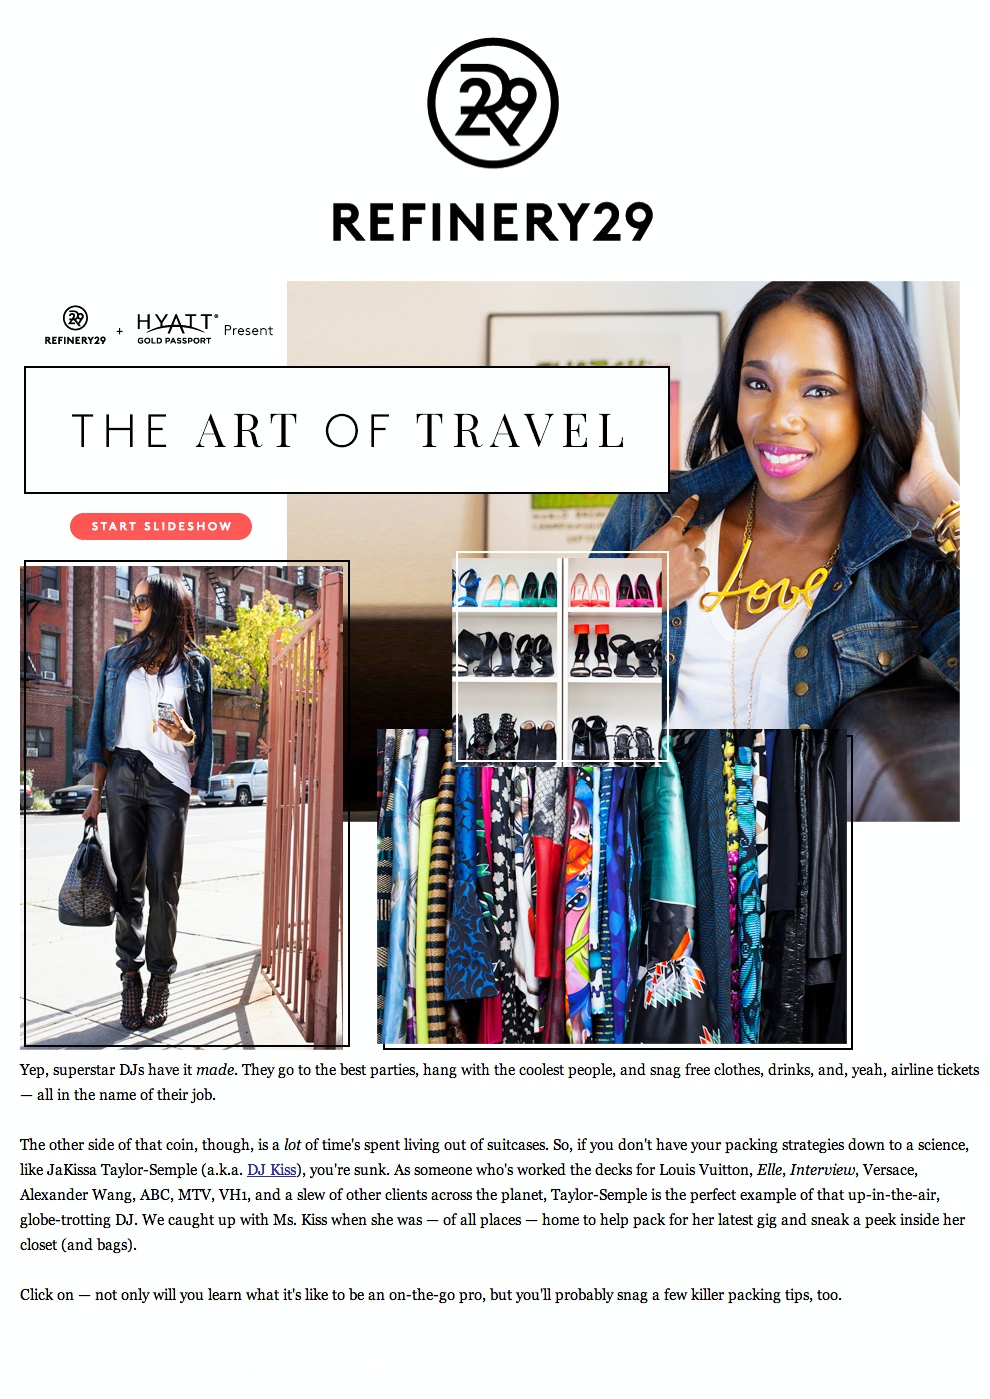 Refinery 29 - The Art of Travel